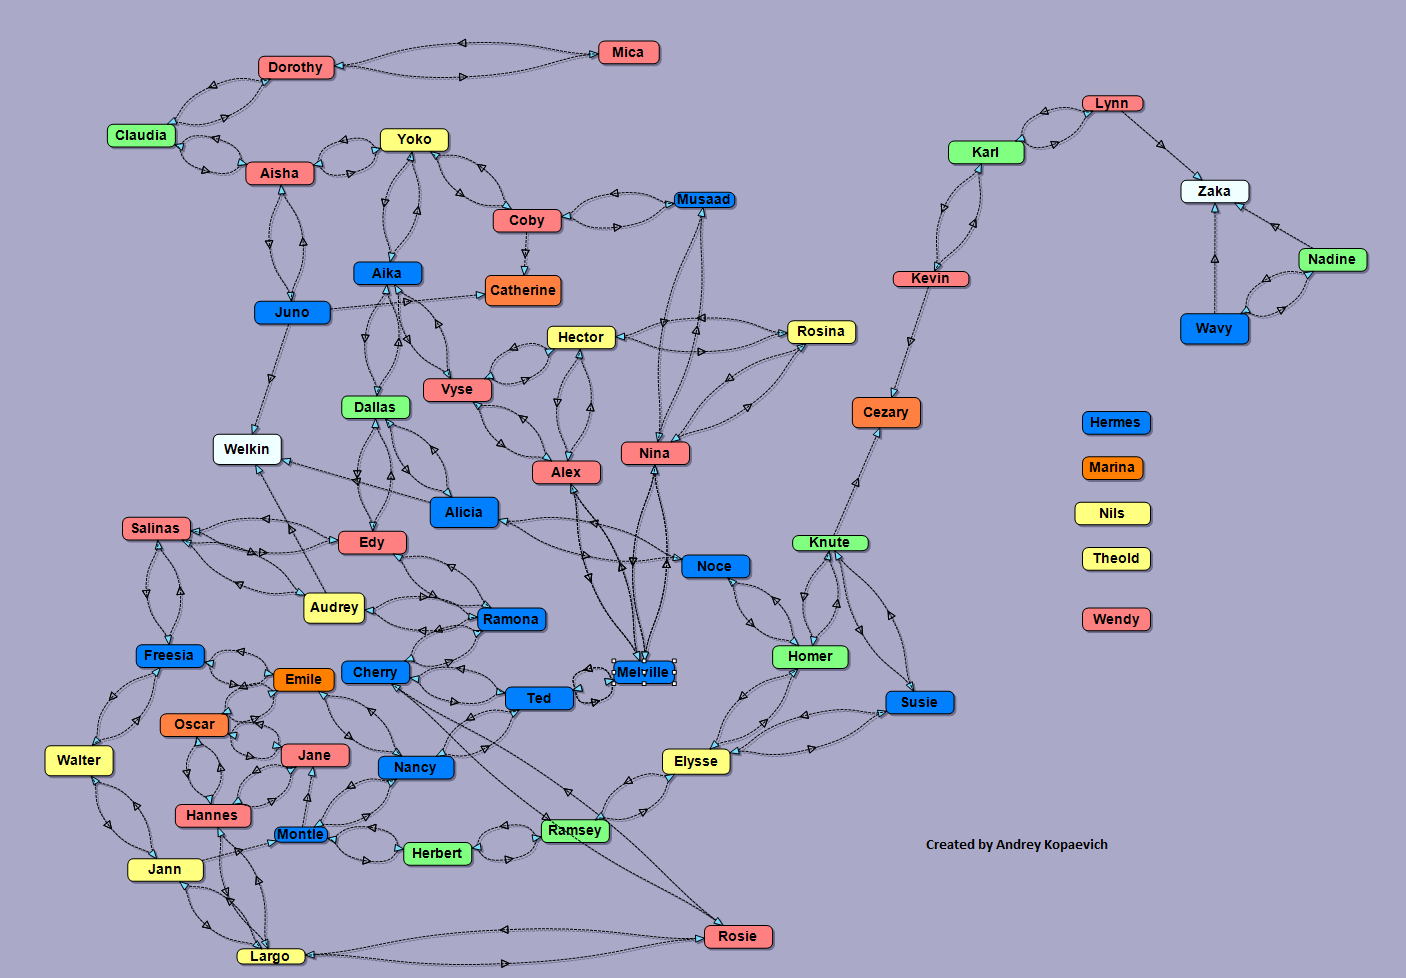 Diagram showing relationships character circuit connection diagram character relationship diagram valkyria wiki fandom powered by wikia rh valkyria wikia com class diagram example ccuart Gallery